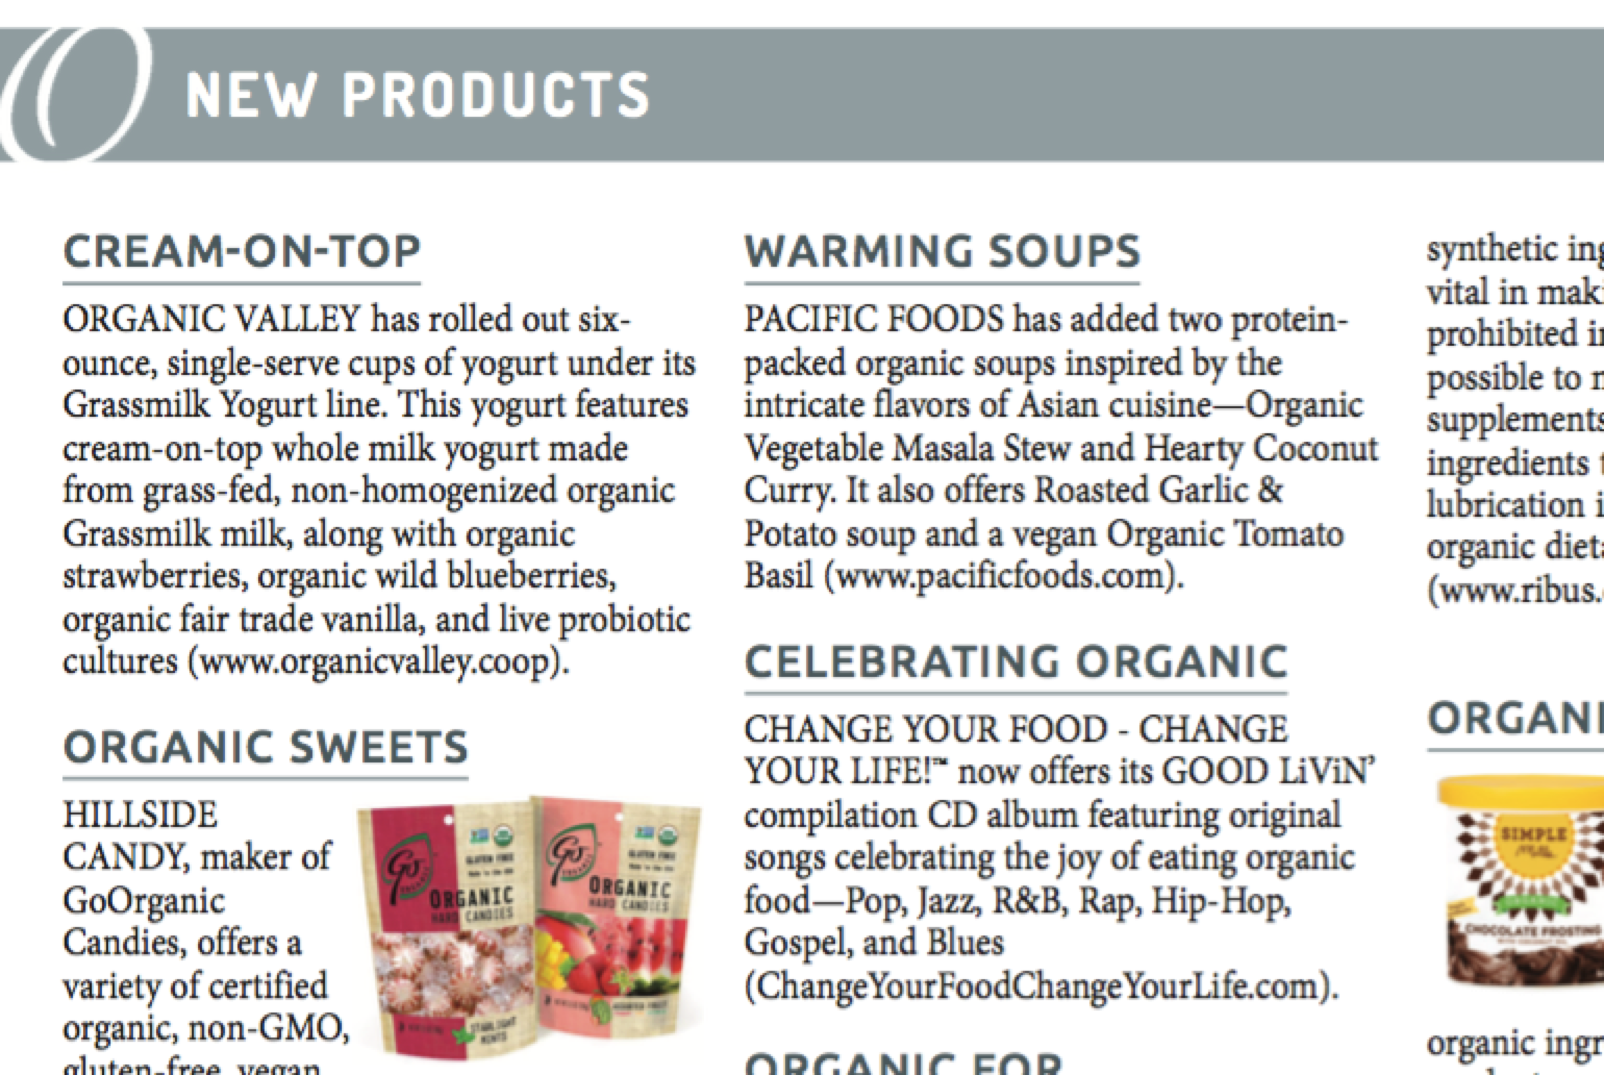 Check out the newest organic products